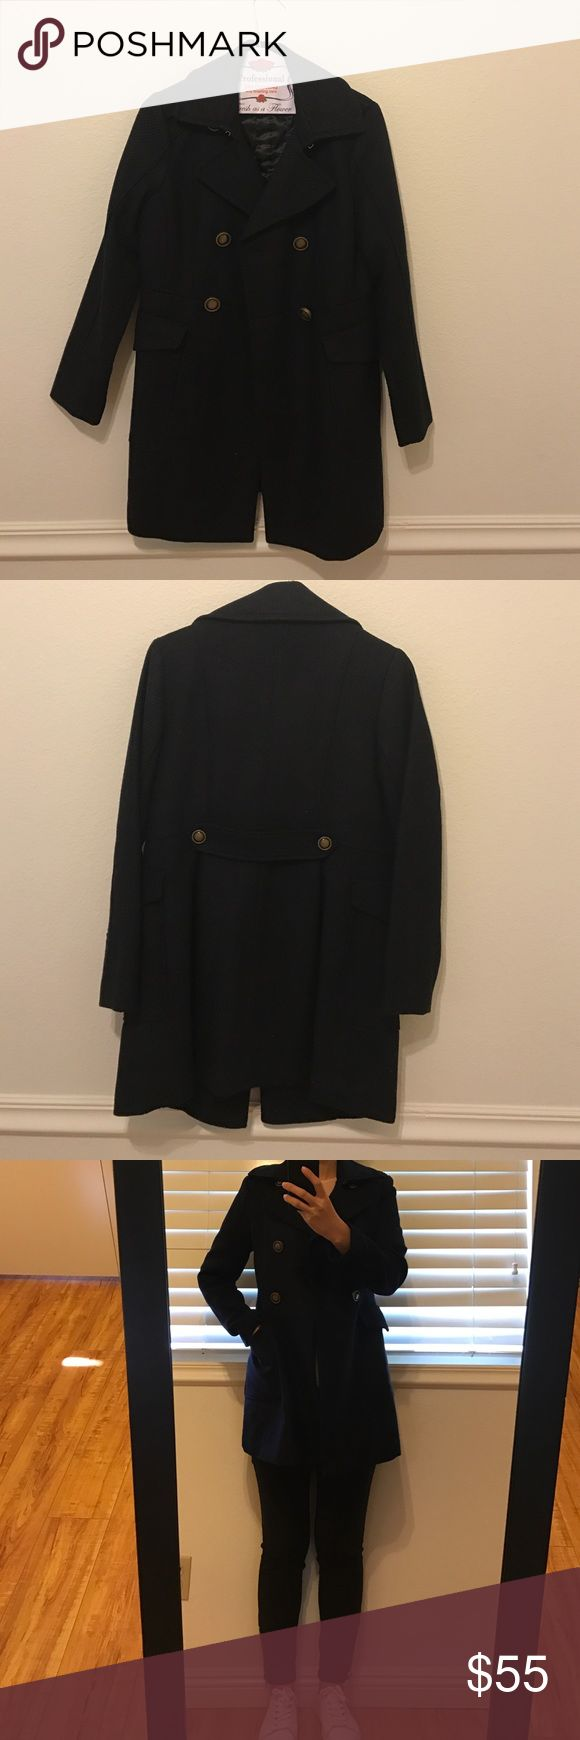 Gap coat Wore only once. Dry cleaned. Size is xsmall/ petite but good for small as well & color is navy GAP Jackets & Coats Pea Coats